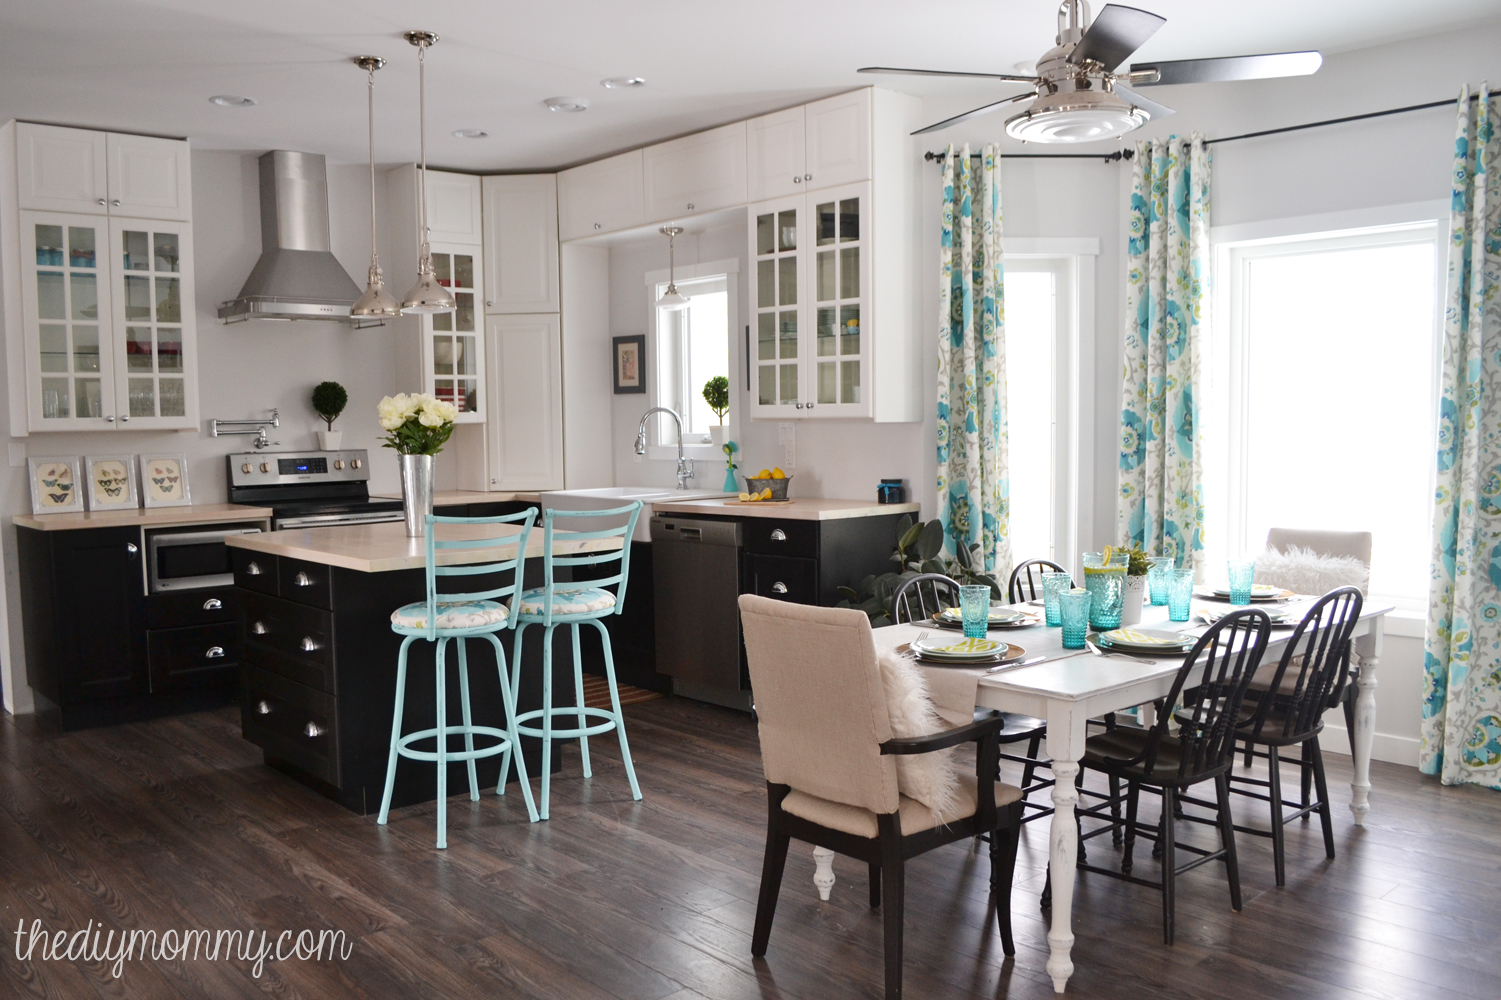 Vintage Kitchen Ideas: A Black, White And Turquoise DIY Kitchen Design With Ikea